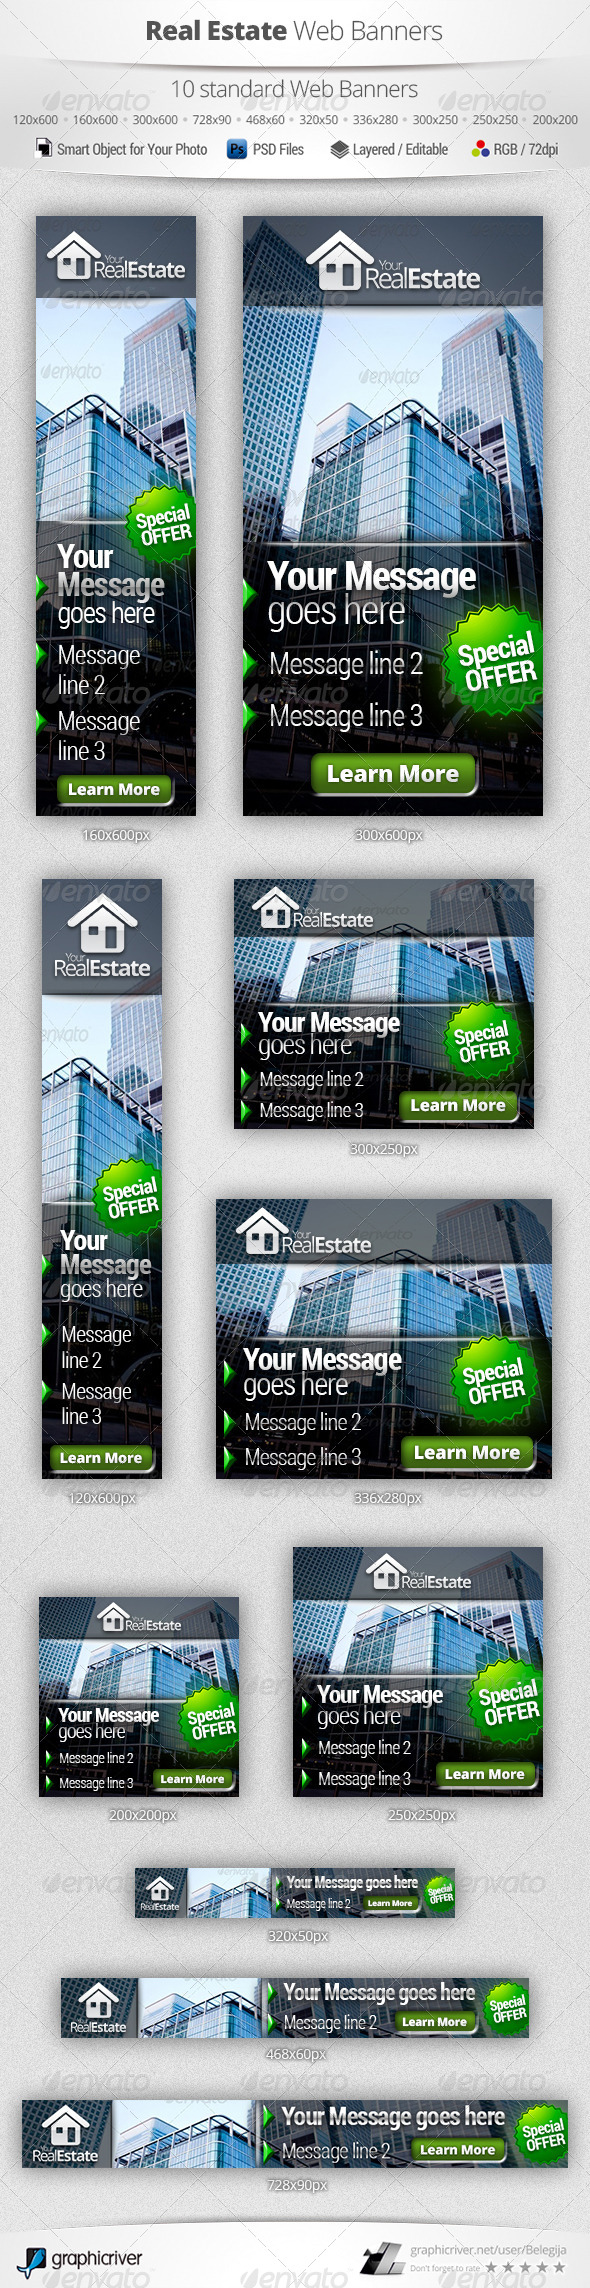 Real Estate Campaign Web Banners 3 Web Banner Banner Banner Template